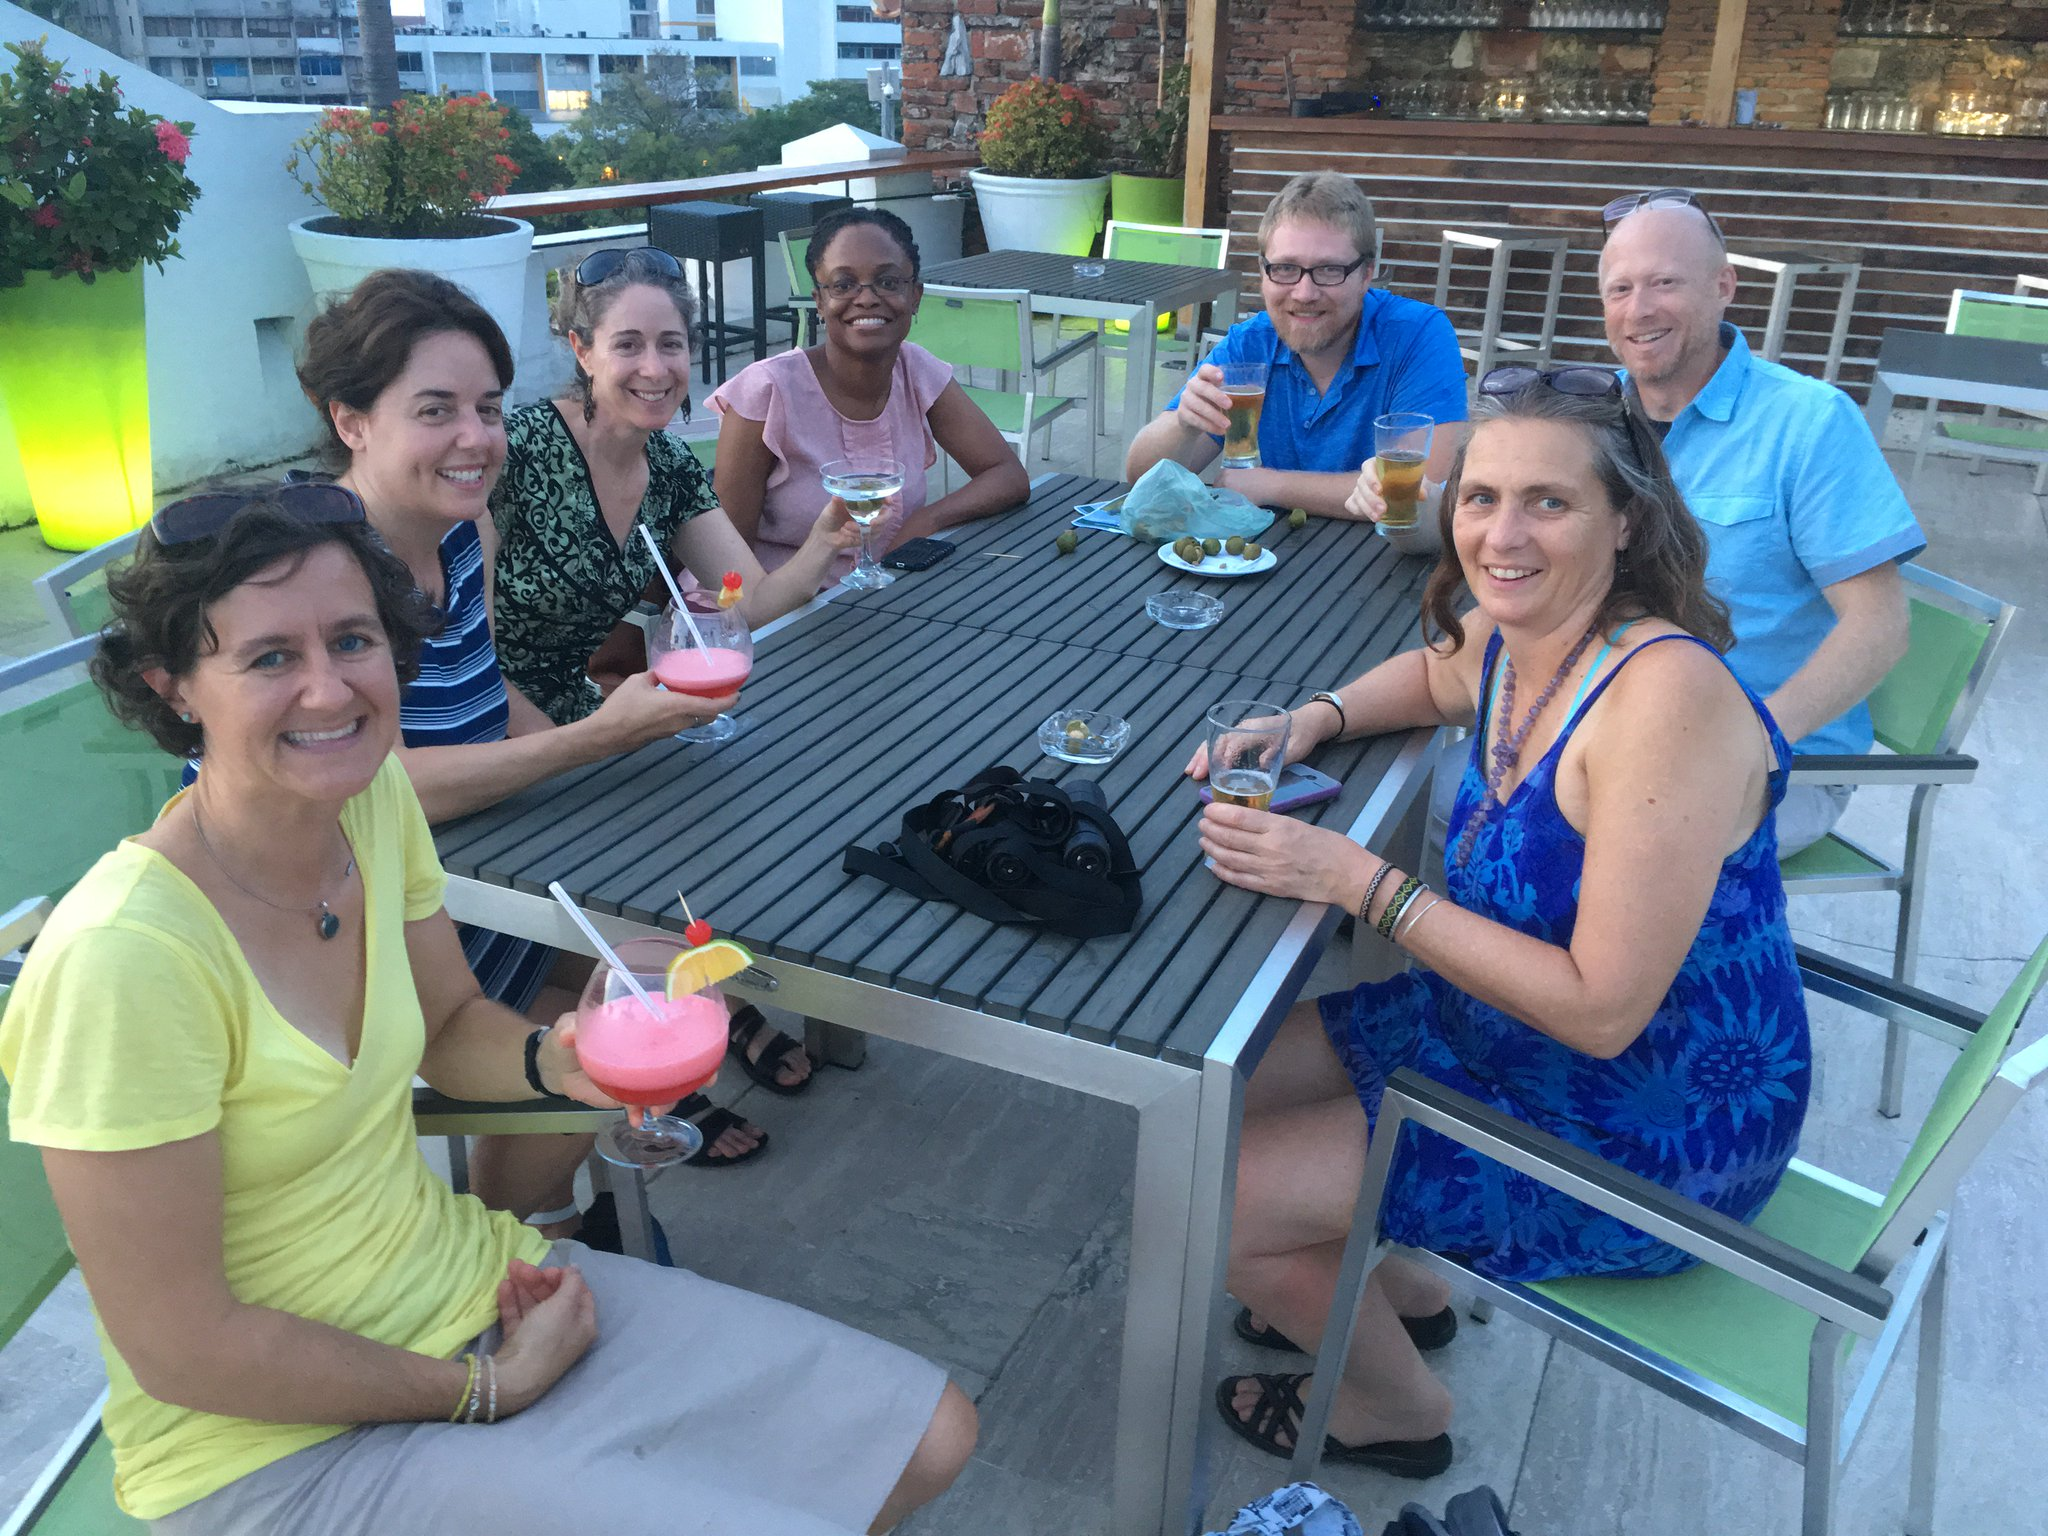 Many thanks to all who came out to socialize at #ICCB2017! https://t.co/vUQKOEFm68